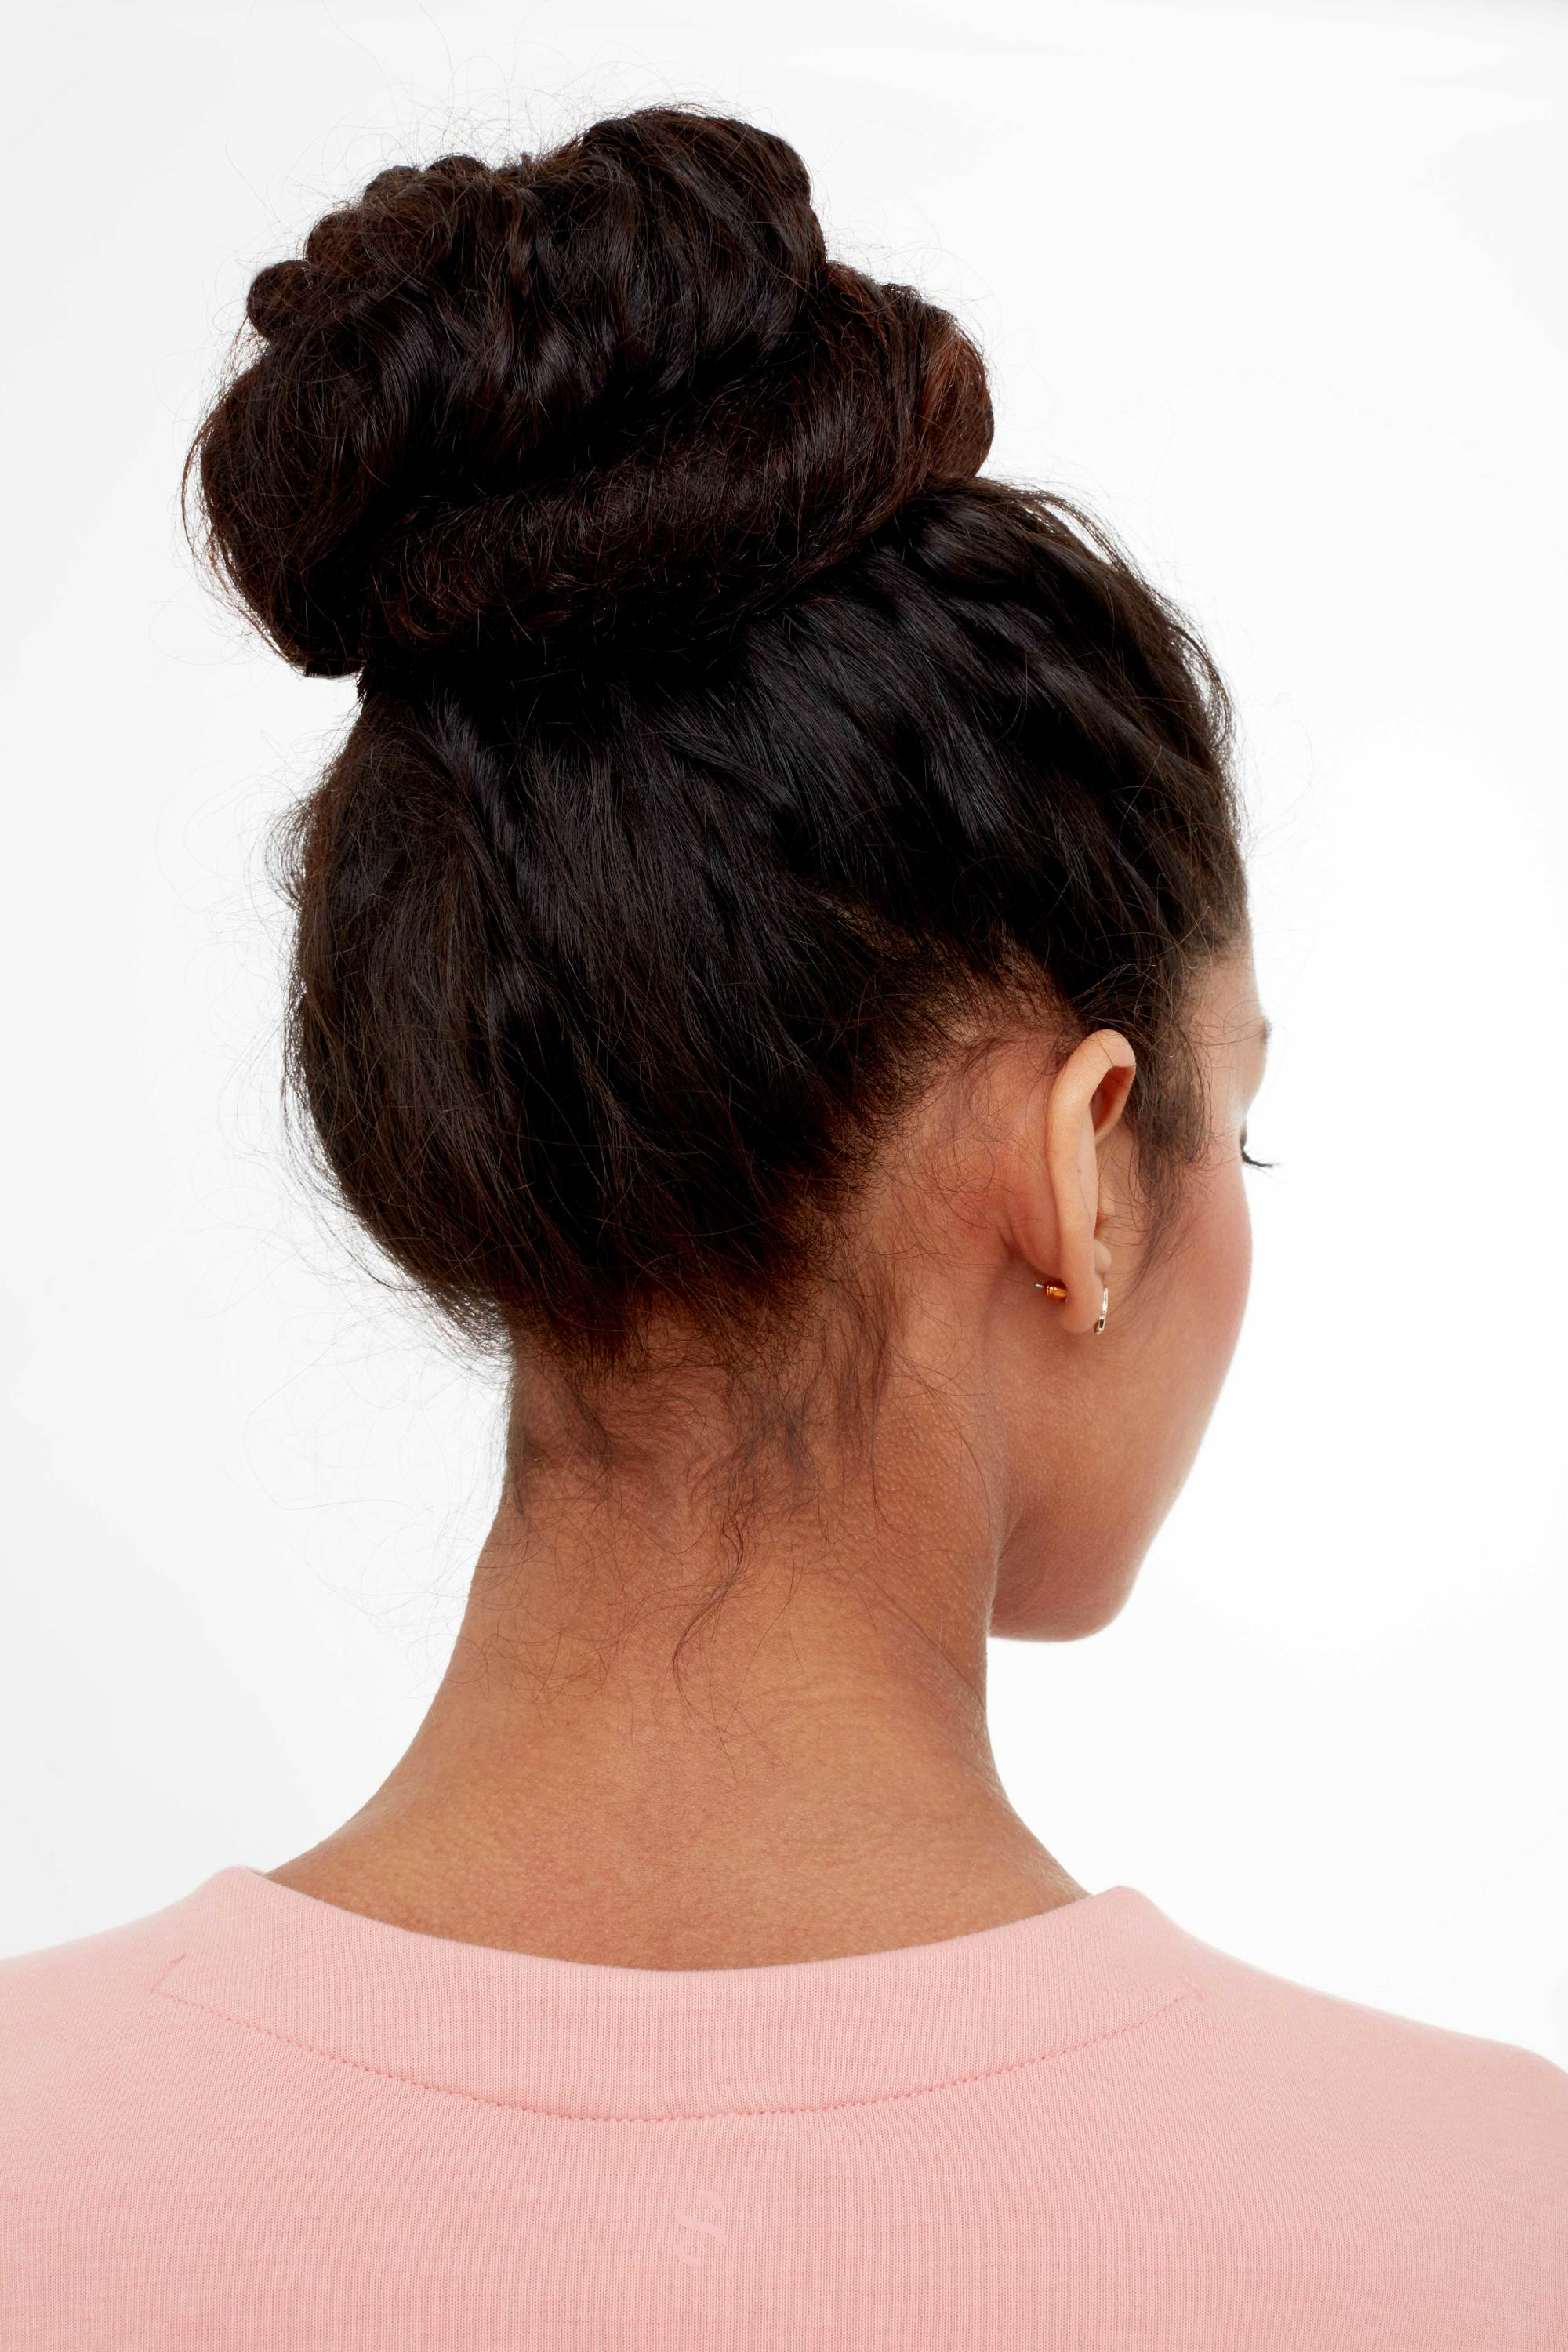 Hairstyles for thick hair: Back shot of model with dark brown long thick hair styled into a twisted bun, wearing pink jumper in studio setting